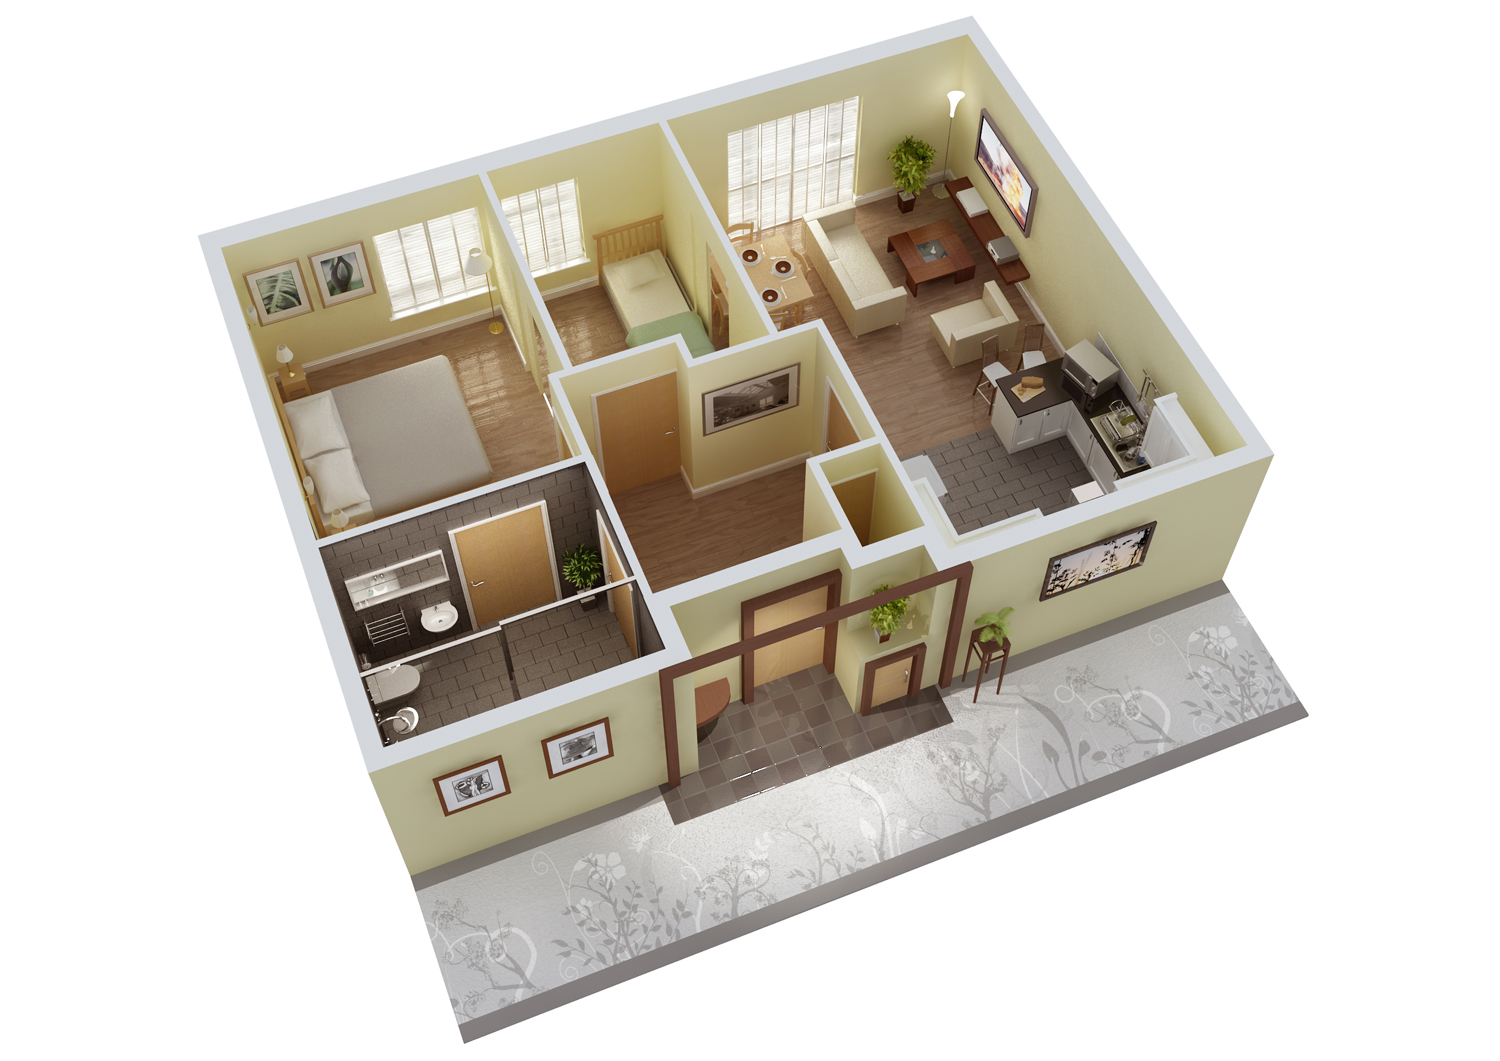 Mathematics resources project 3d floor plan for House floor plan design